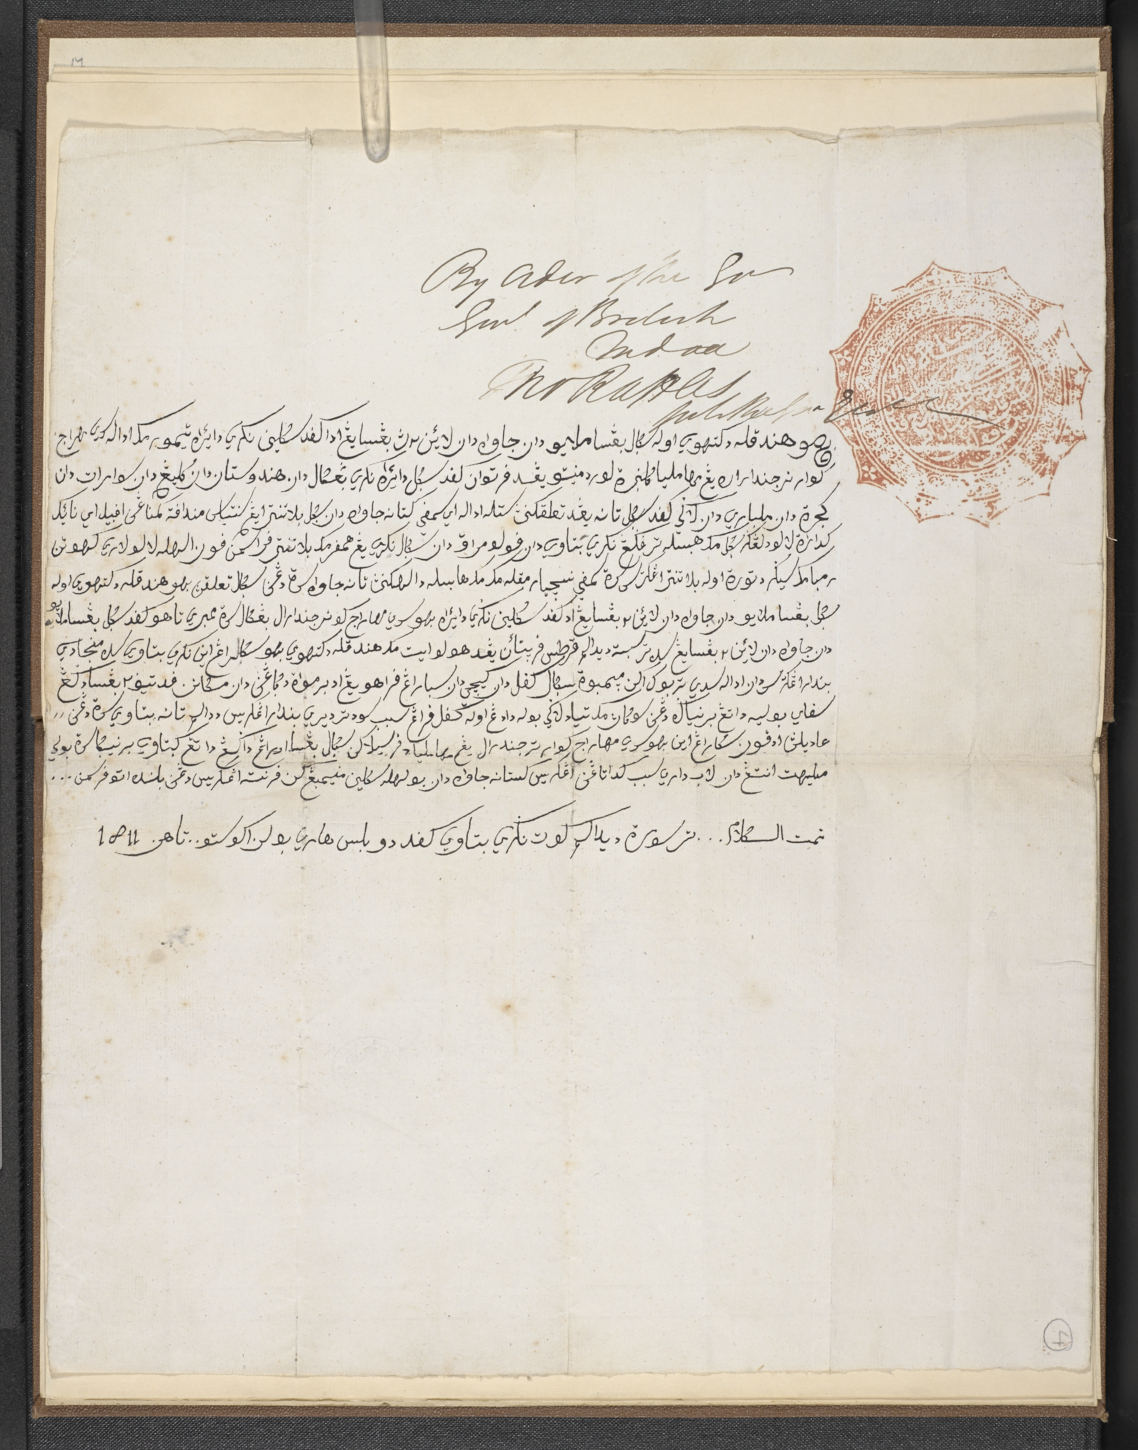 The announcement of the British capture of the island of Java from the Dutch in August 1811 signed by Thomas Stamford Raffles Malay Manuscripts British Library